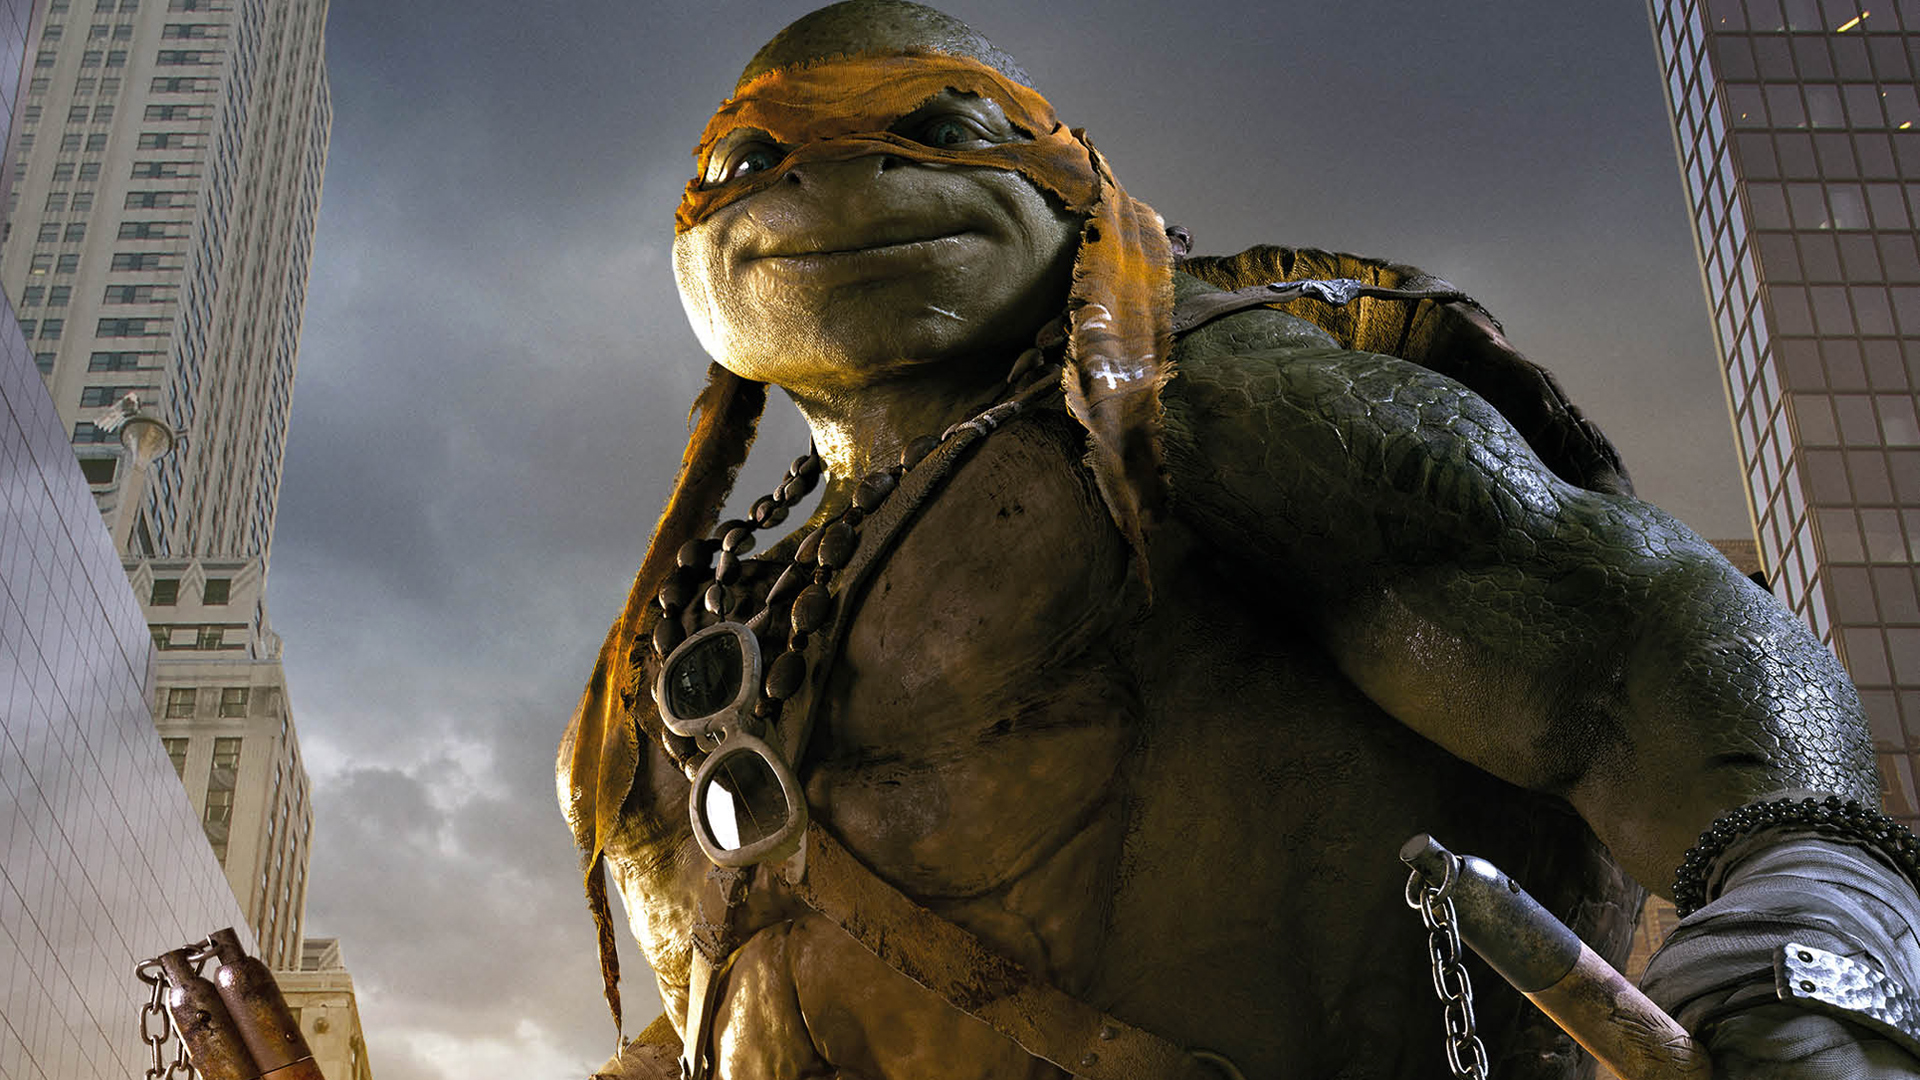 Michelangelo TMNT 2014 Wallpaper HD